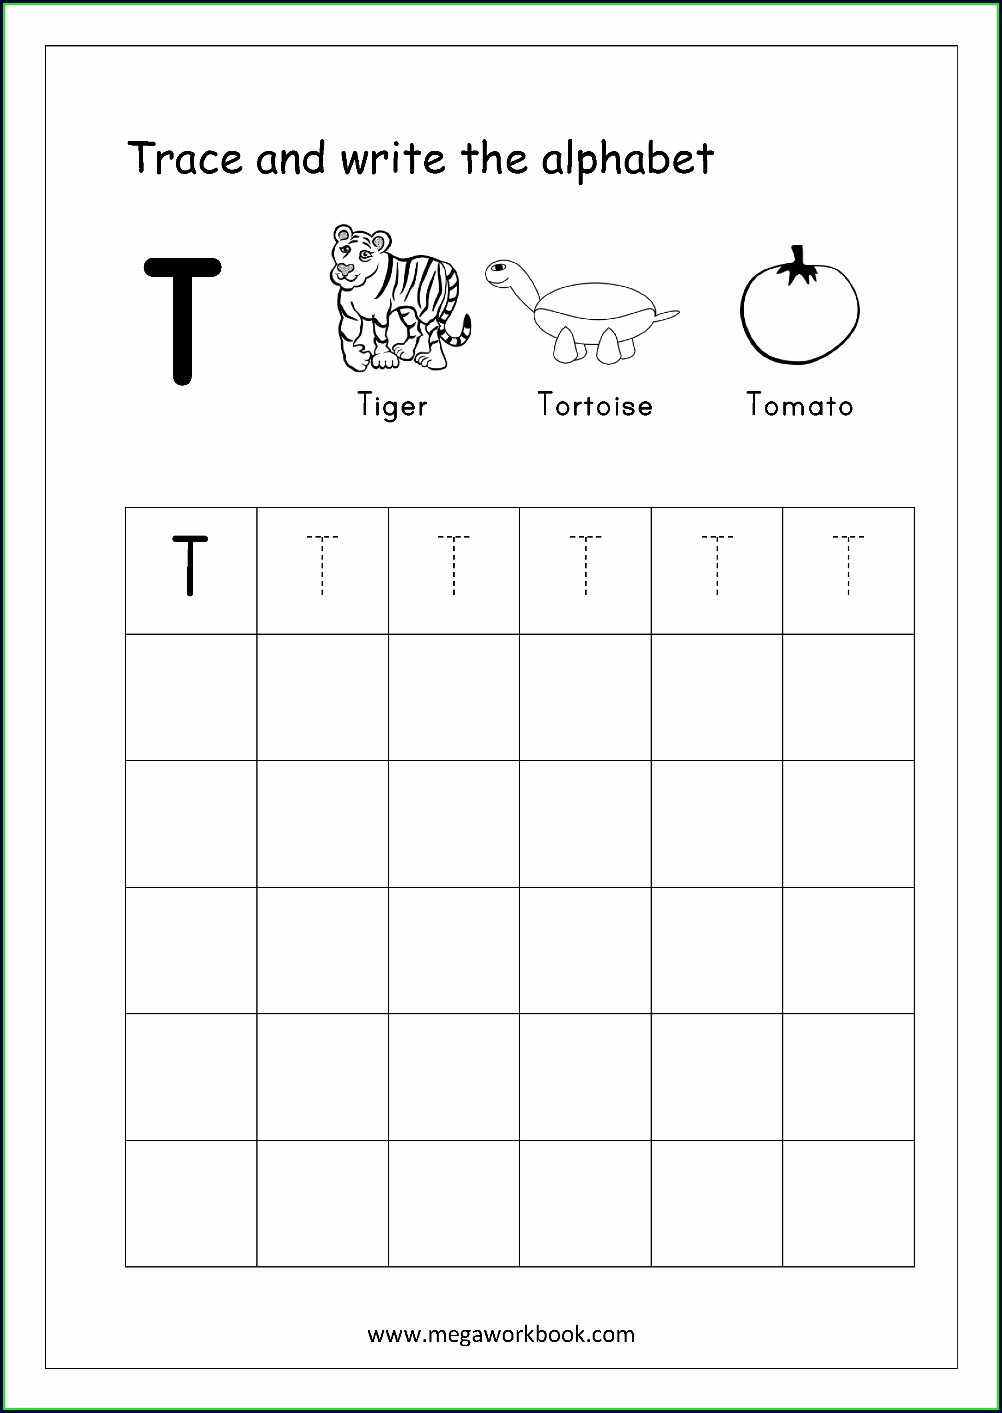 English Alphabet Writing Worksheet Pdf